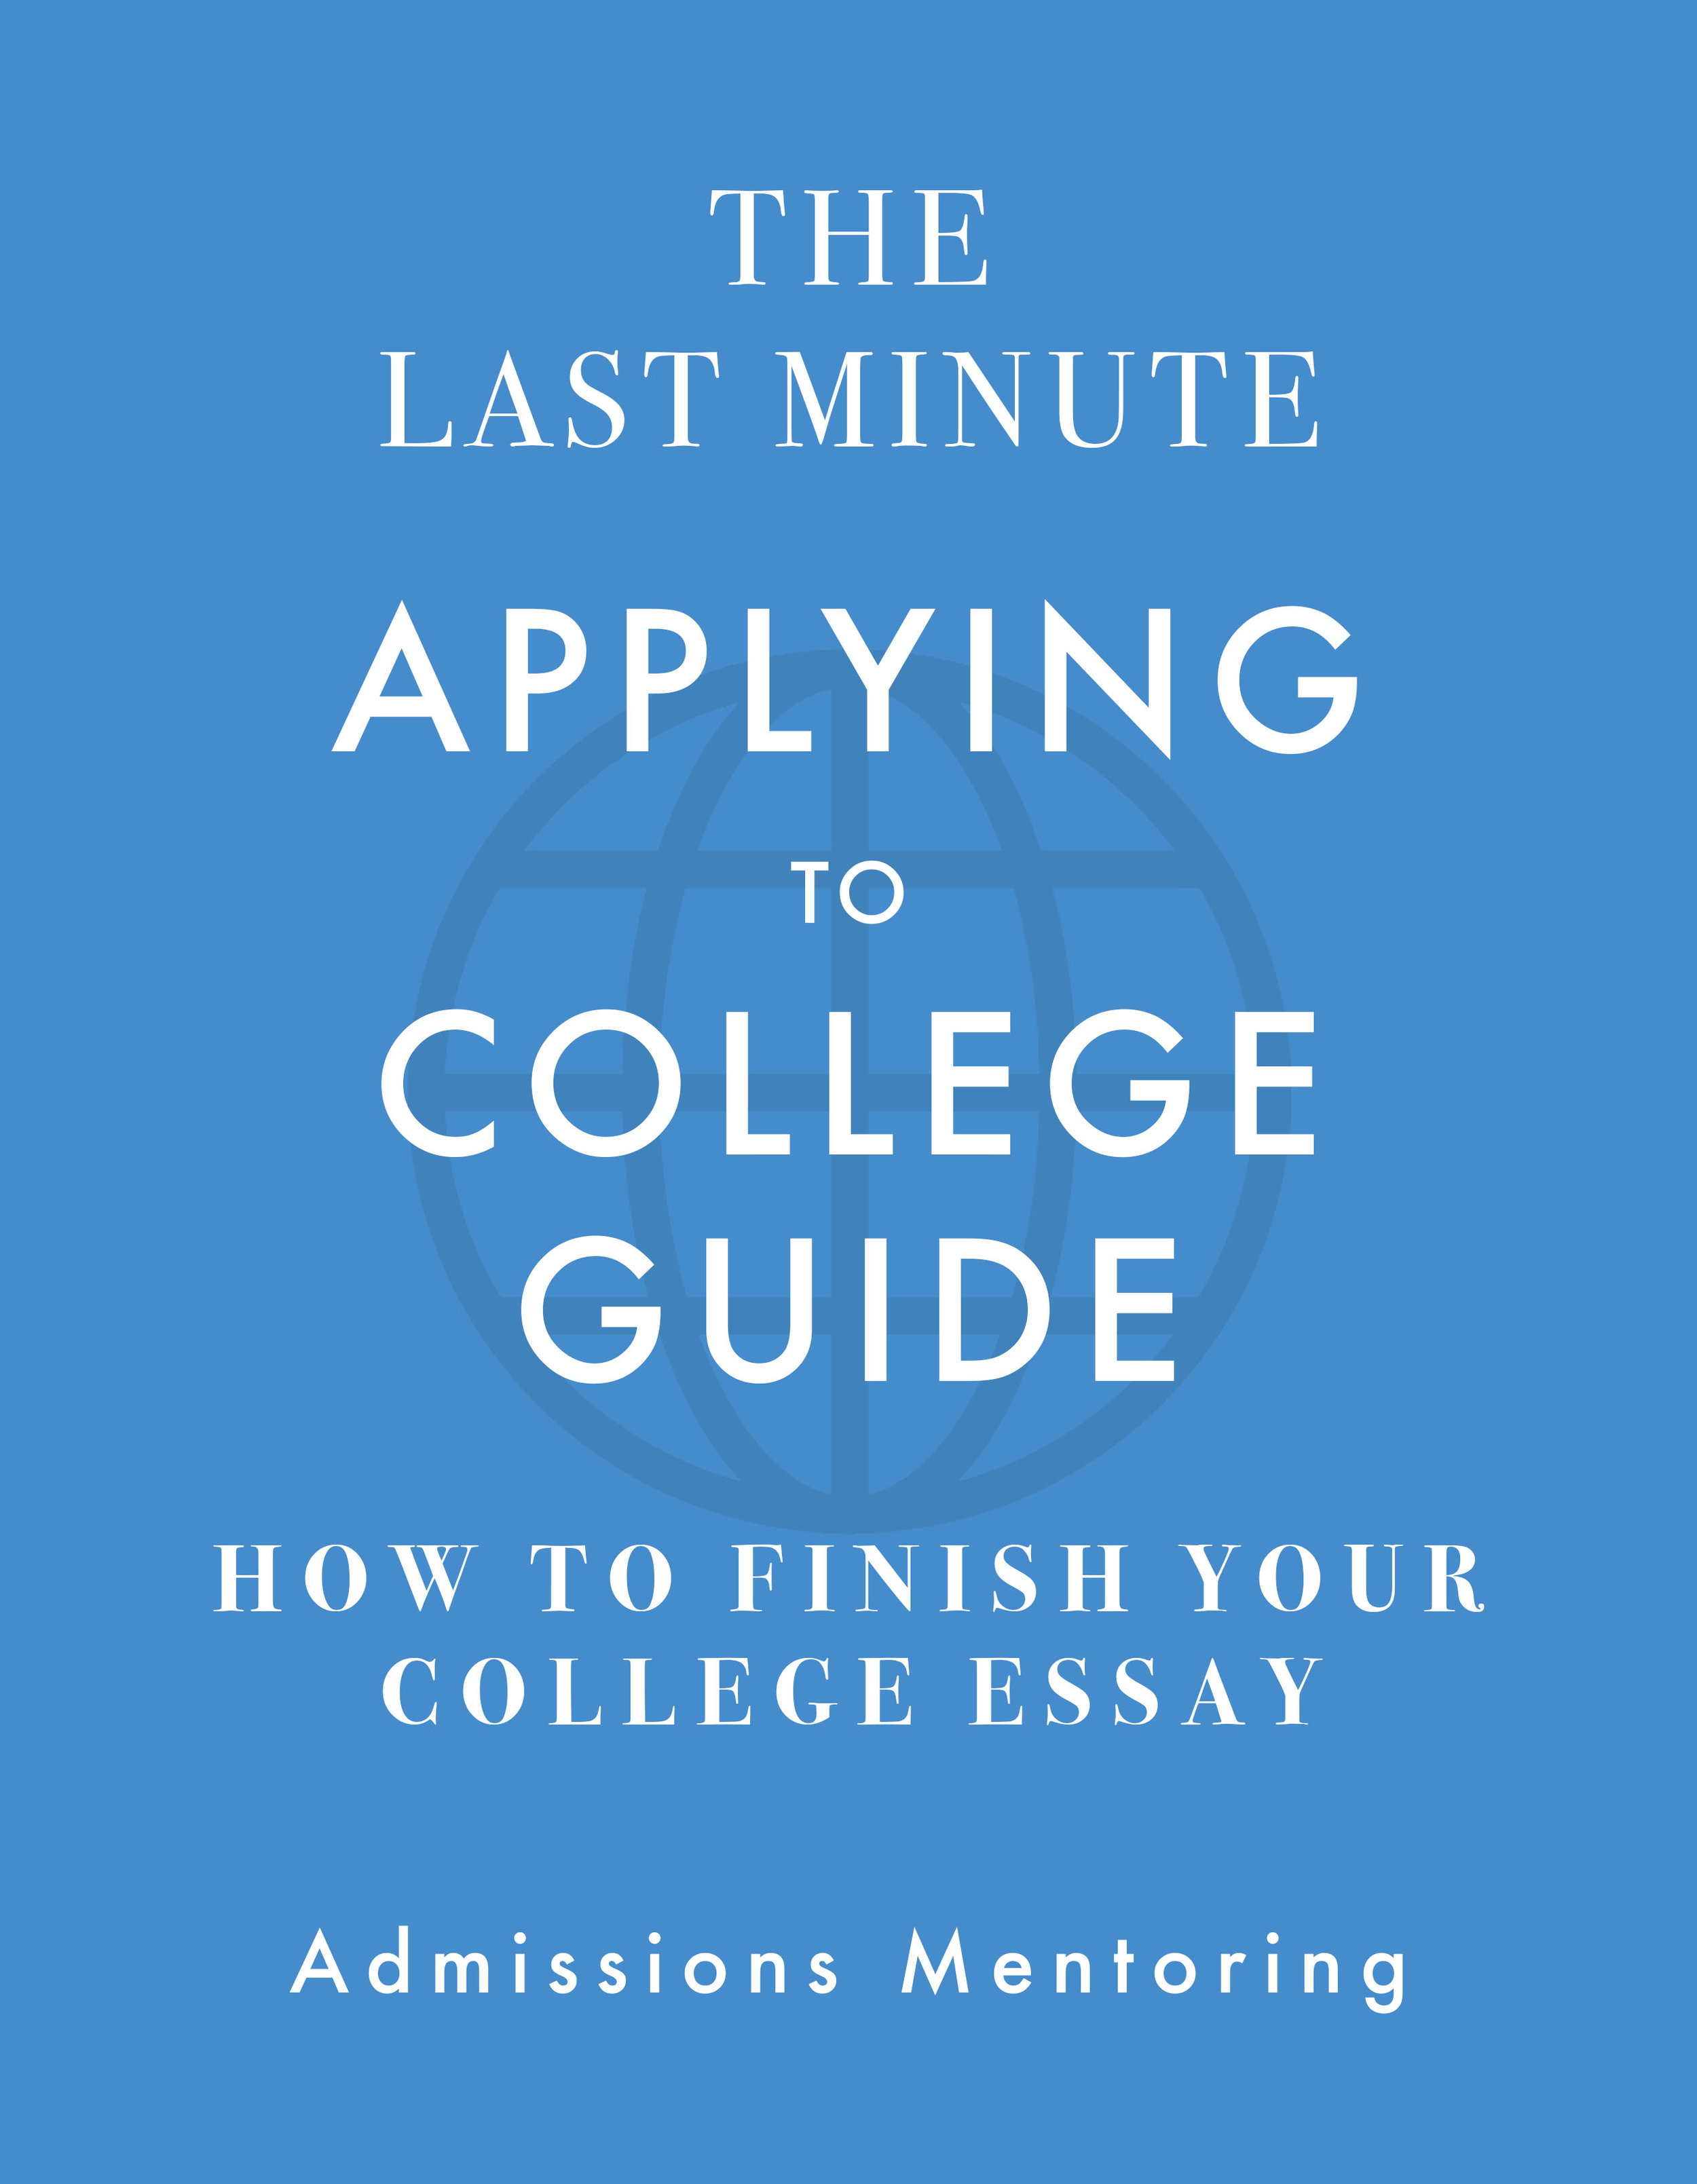 Applying to College Guide - Finish Essay.jpg